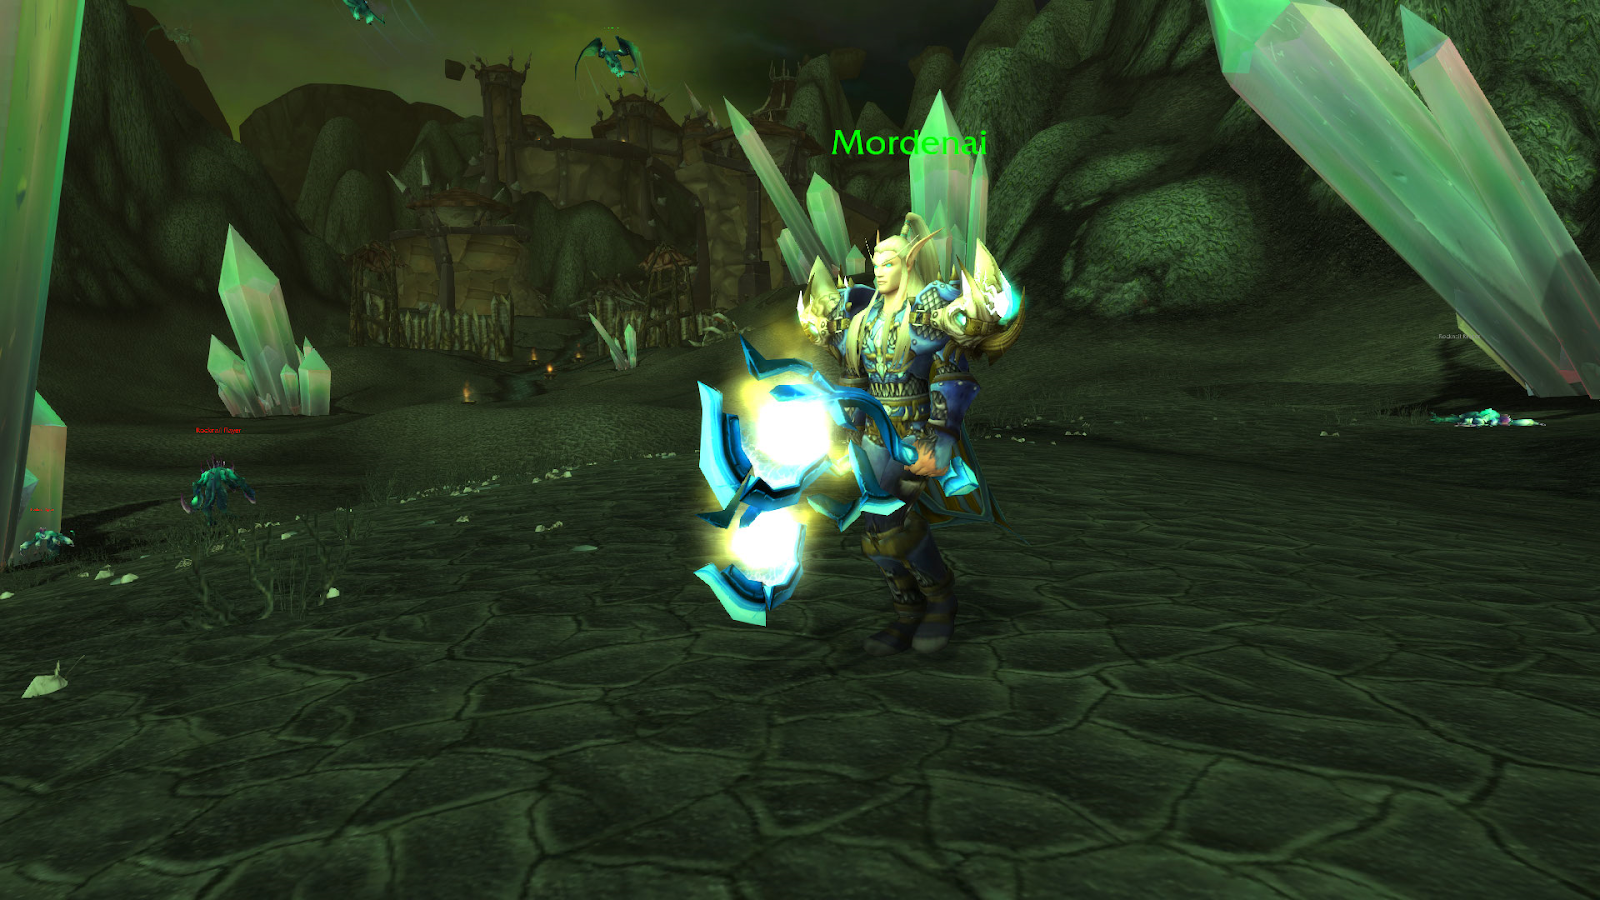 Mordenai patrolling around, he starts the quest chain with Netherwing